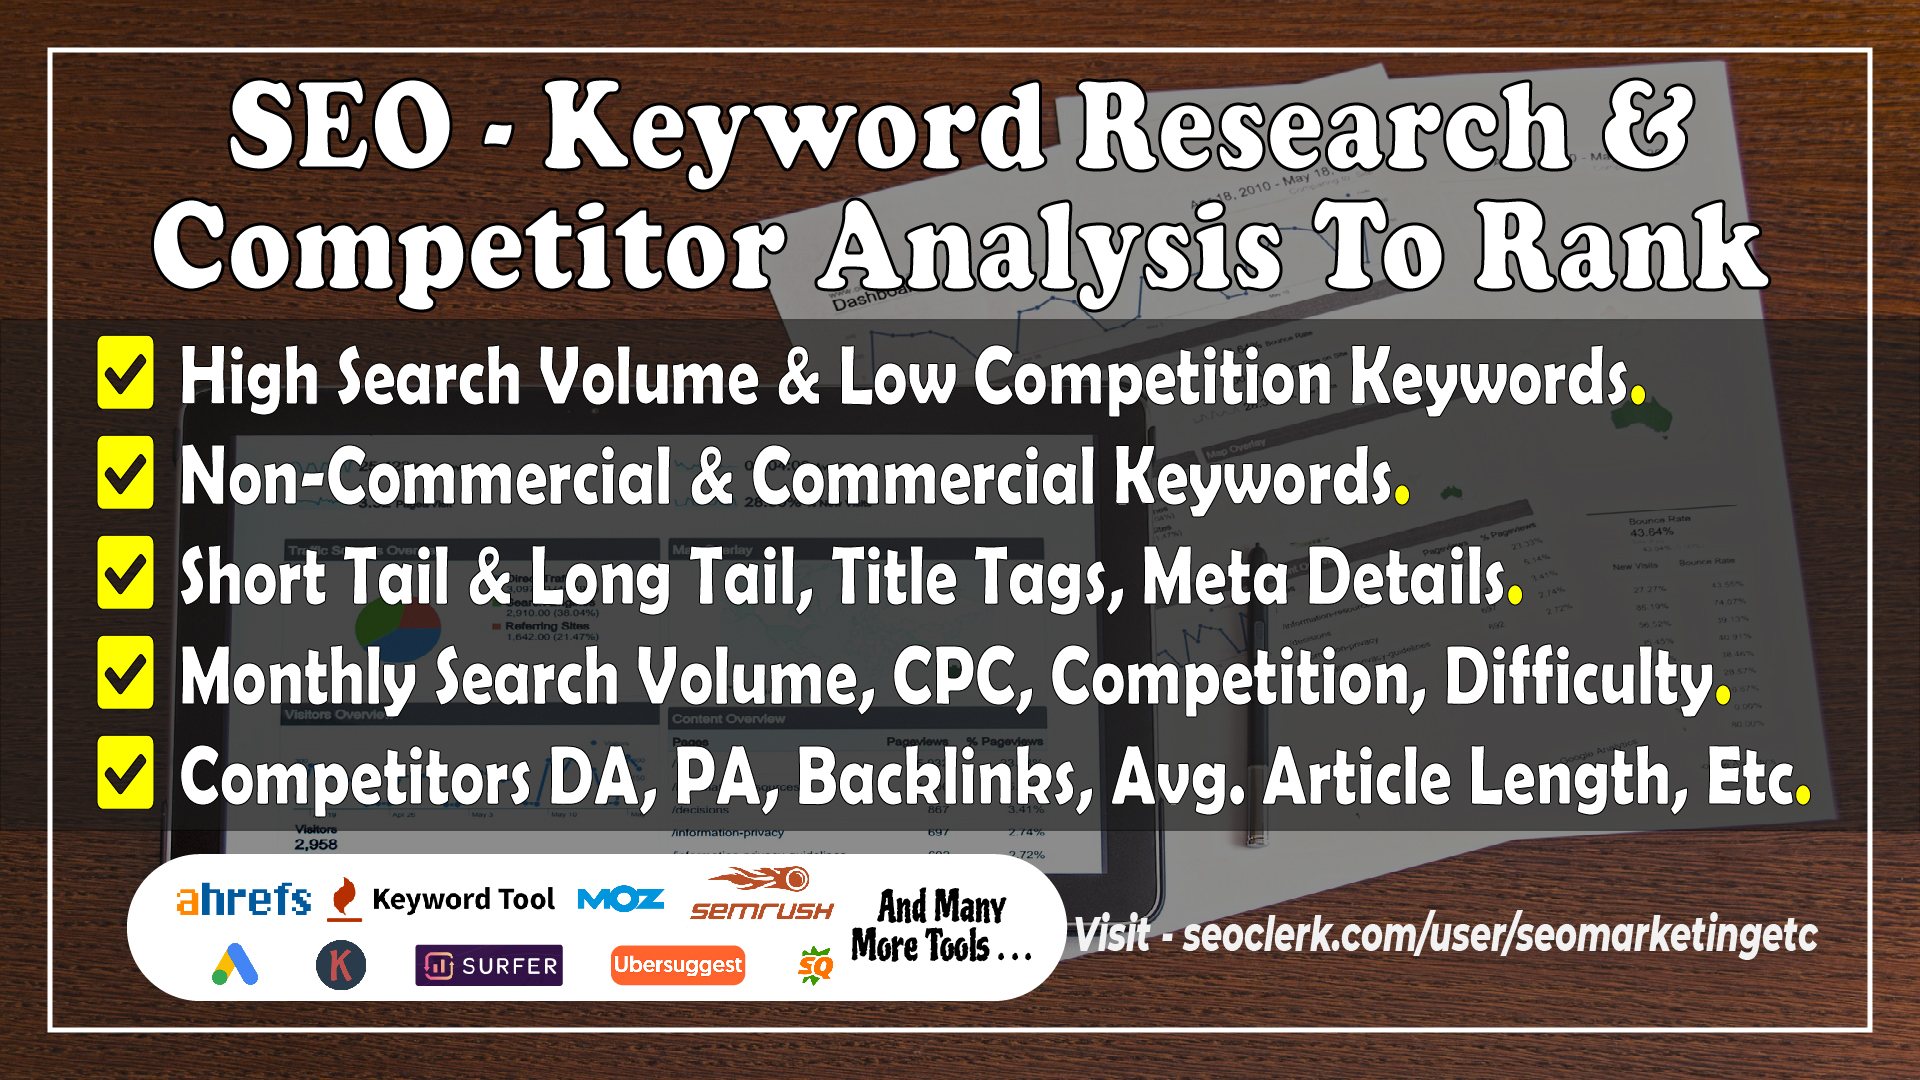 I will do keyword research and competitor analysis for seo to rank